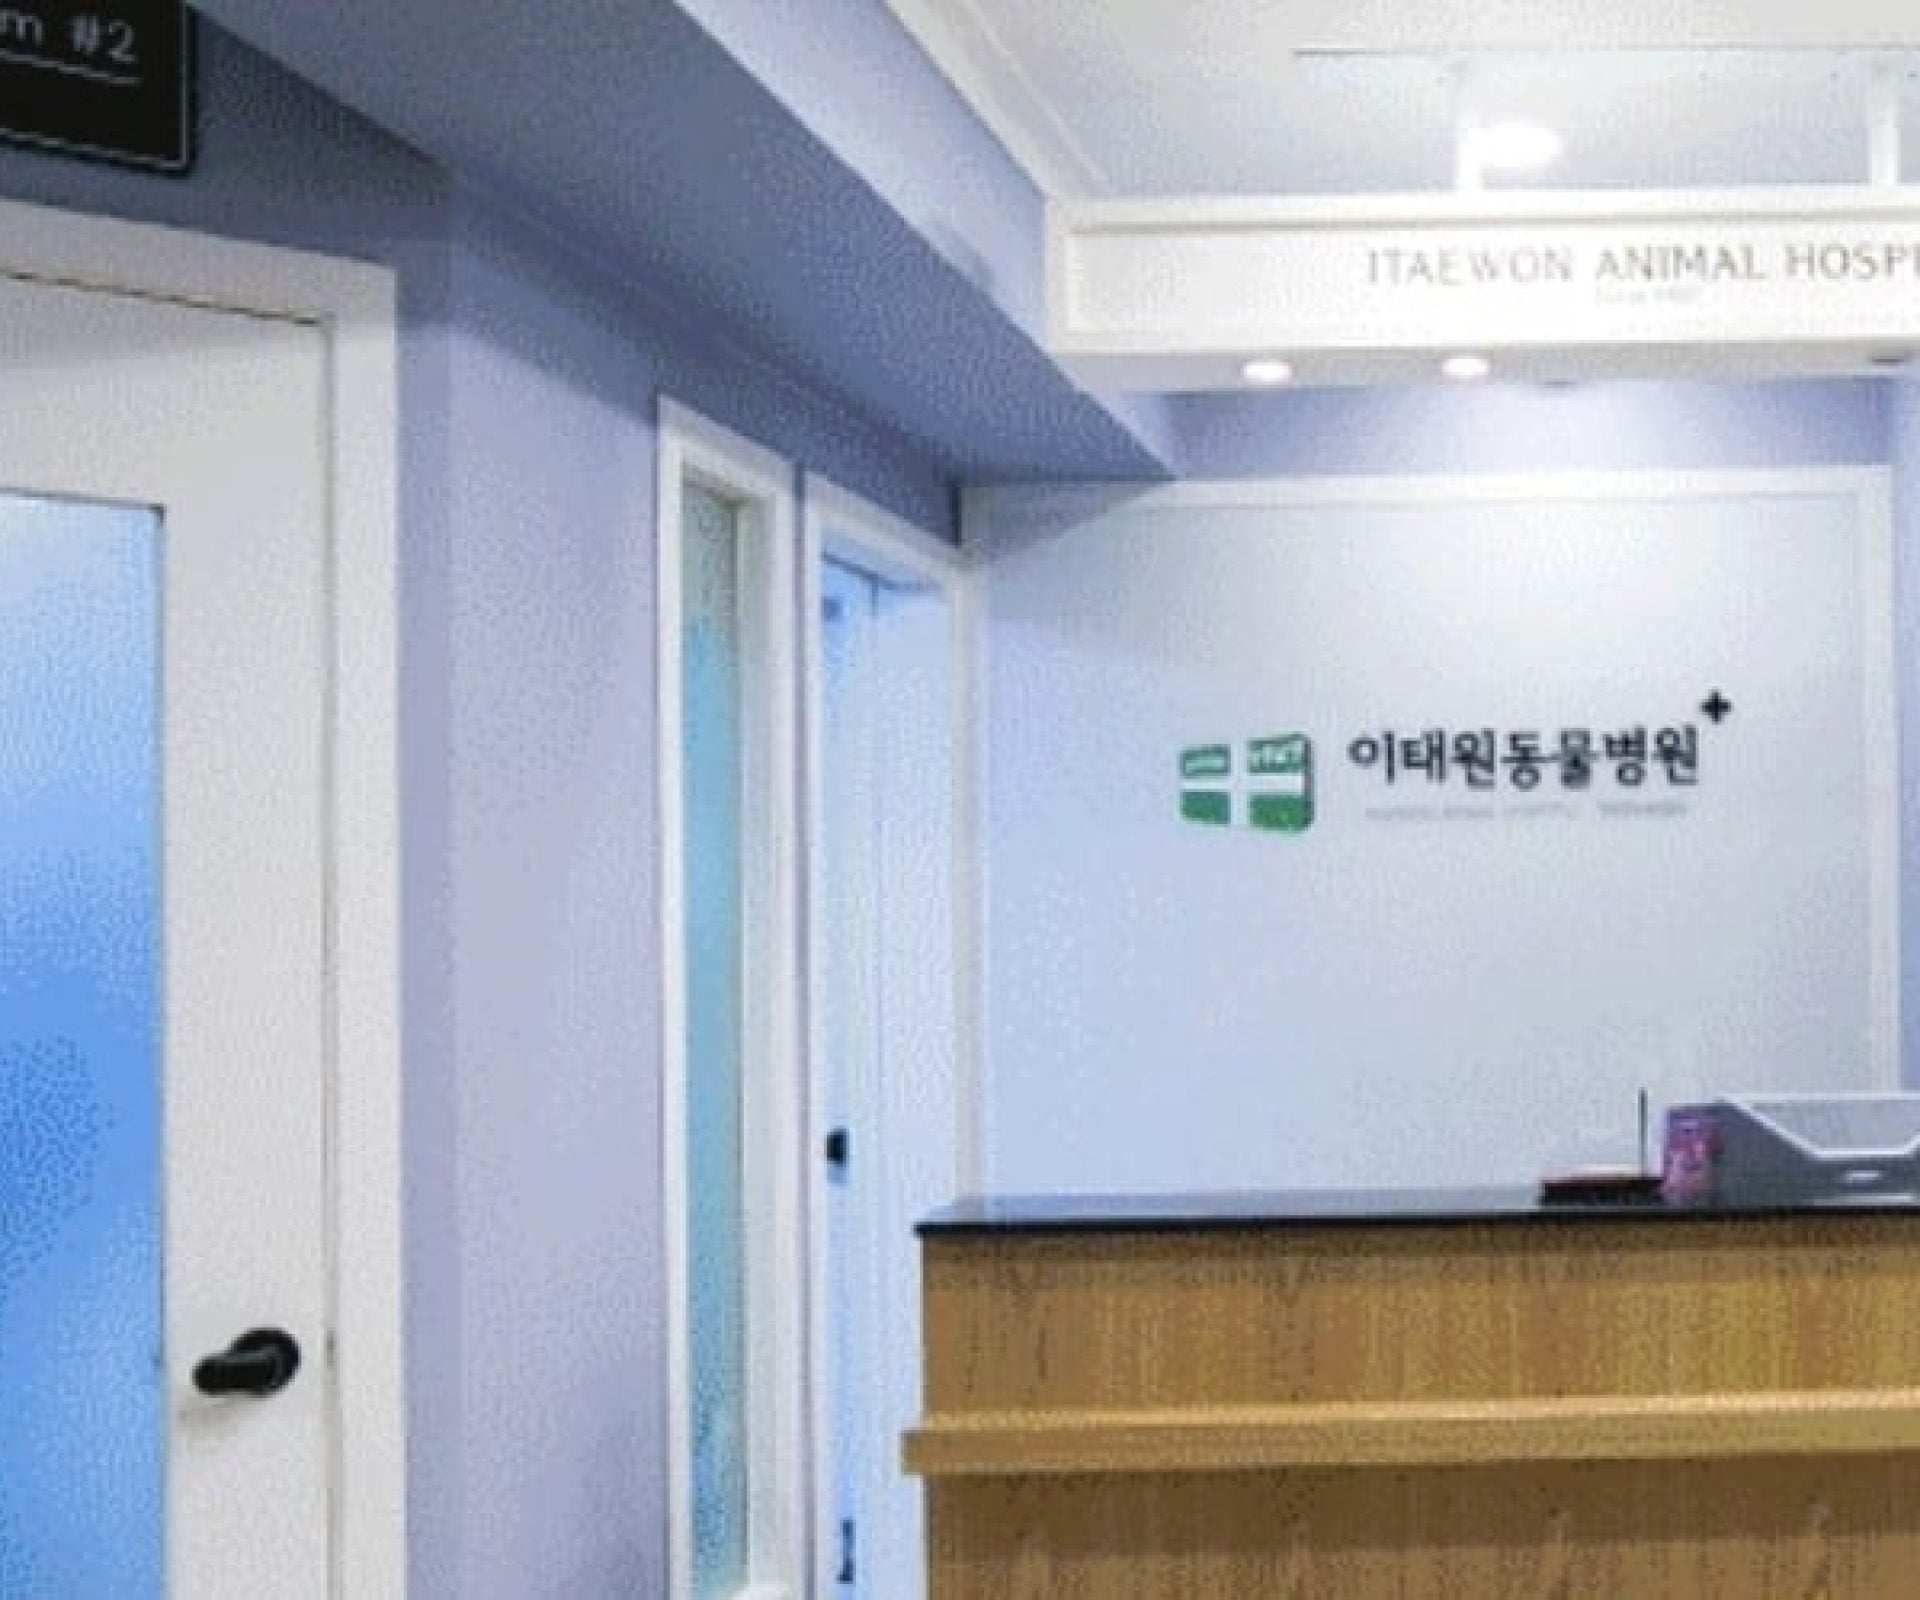 Itaewon Animal Hospital | Yongsan-gu, Seoul